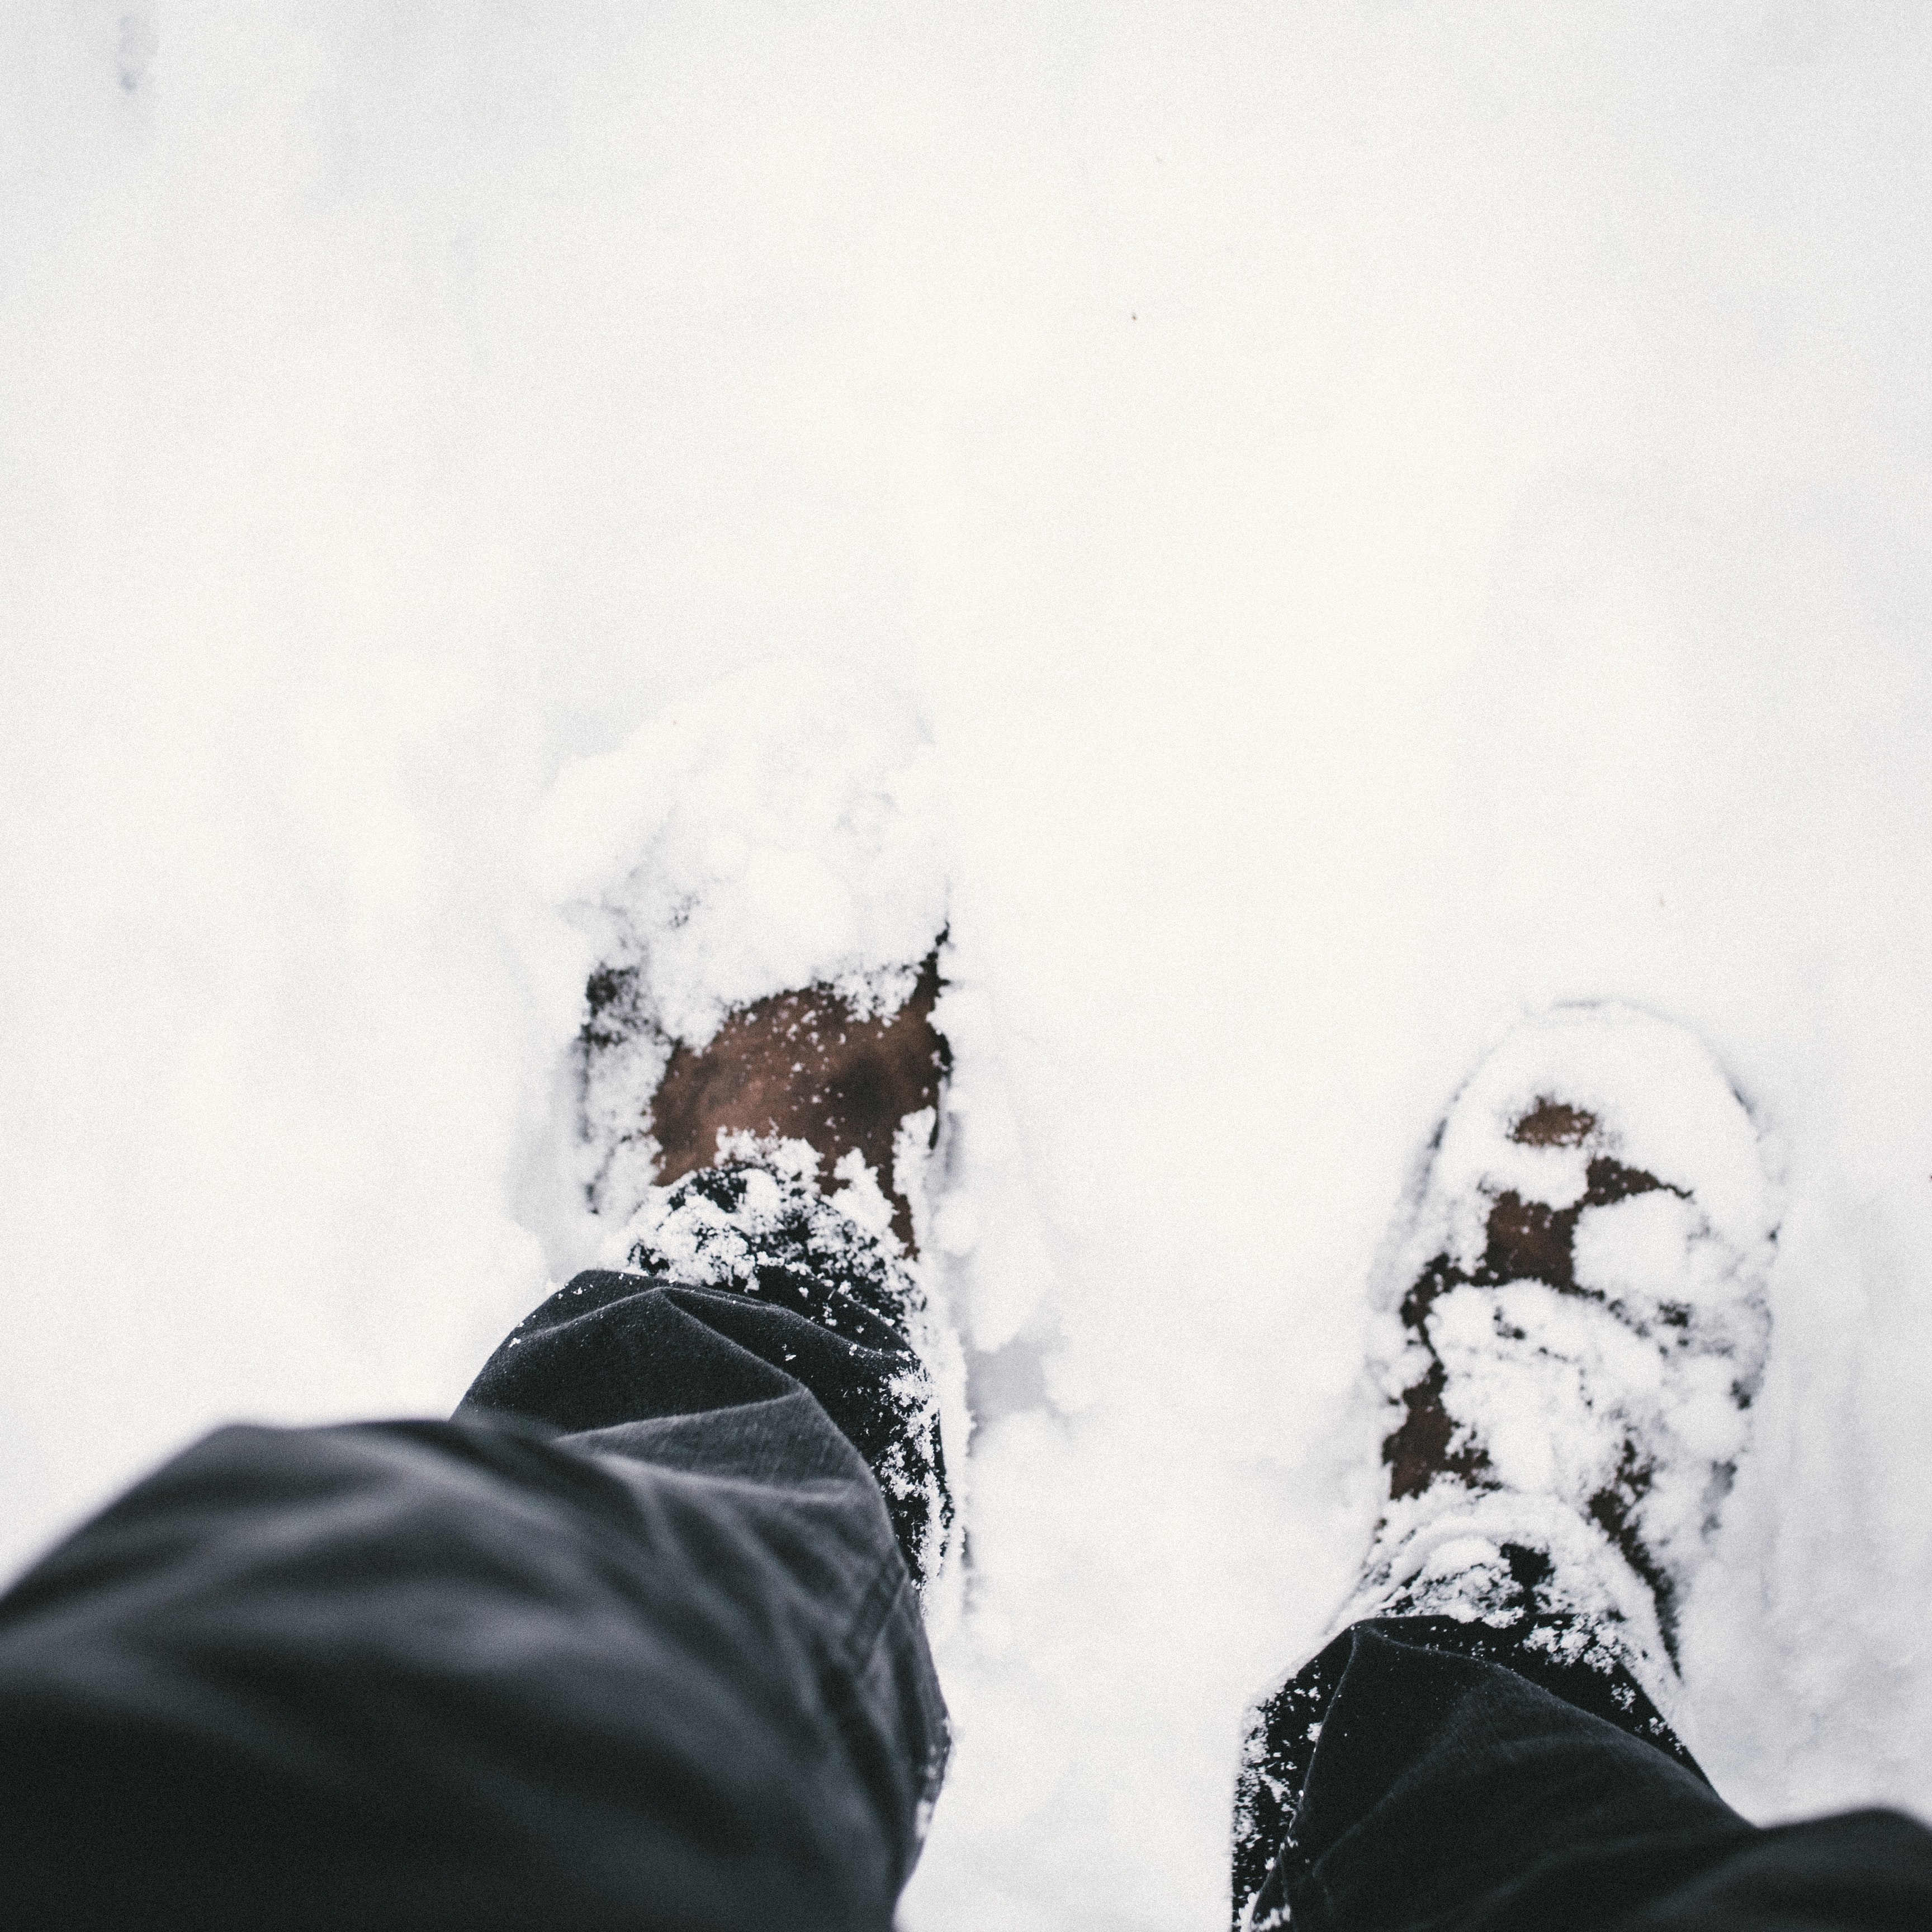 person on snow